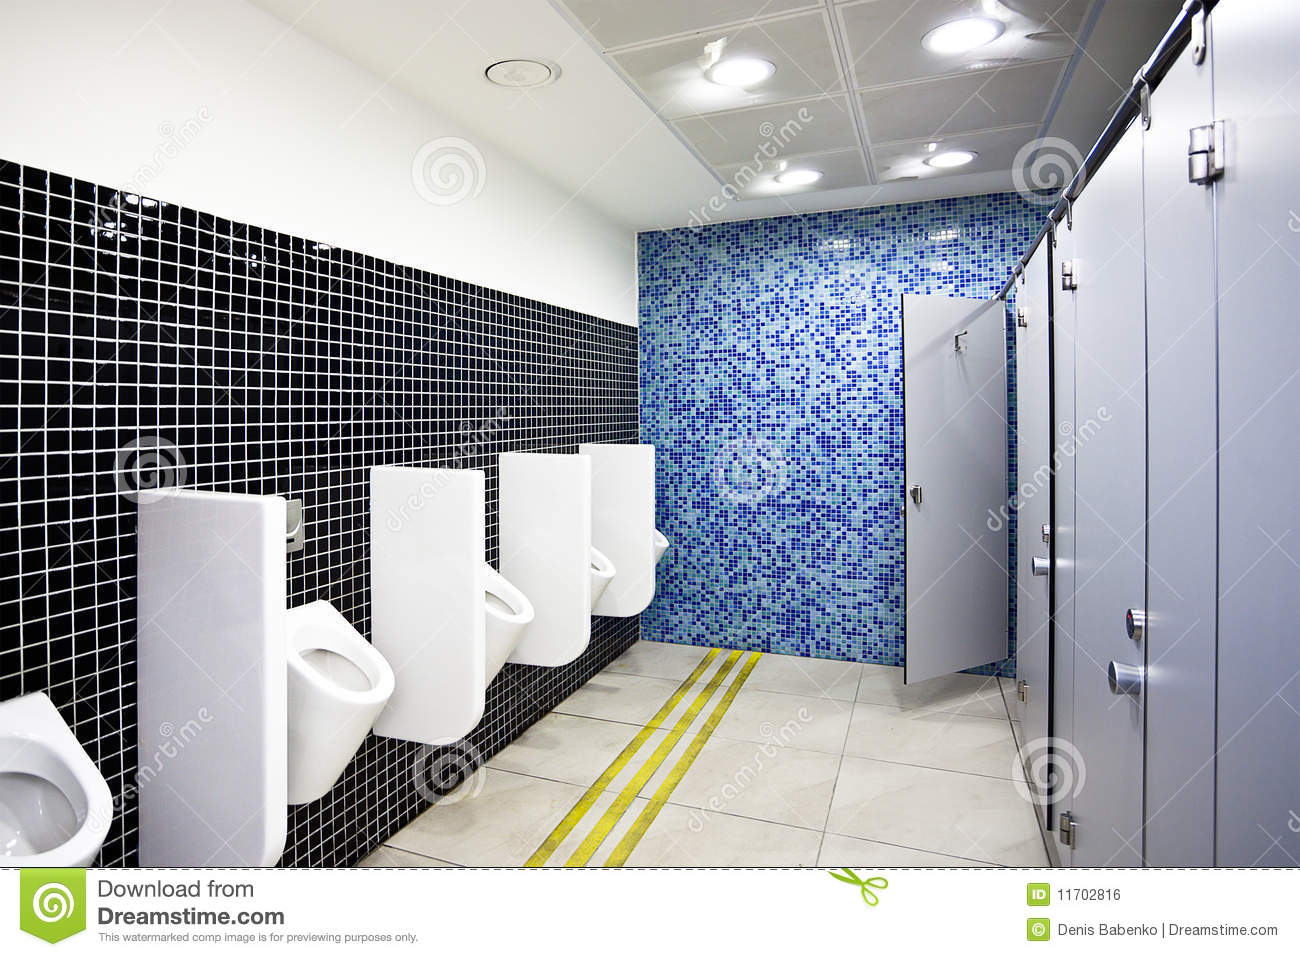 Public Toilet With Cubicles And Urinals Royalty Free Stock